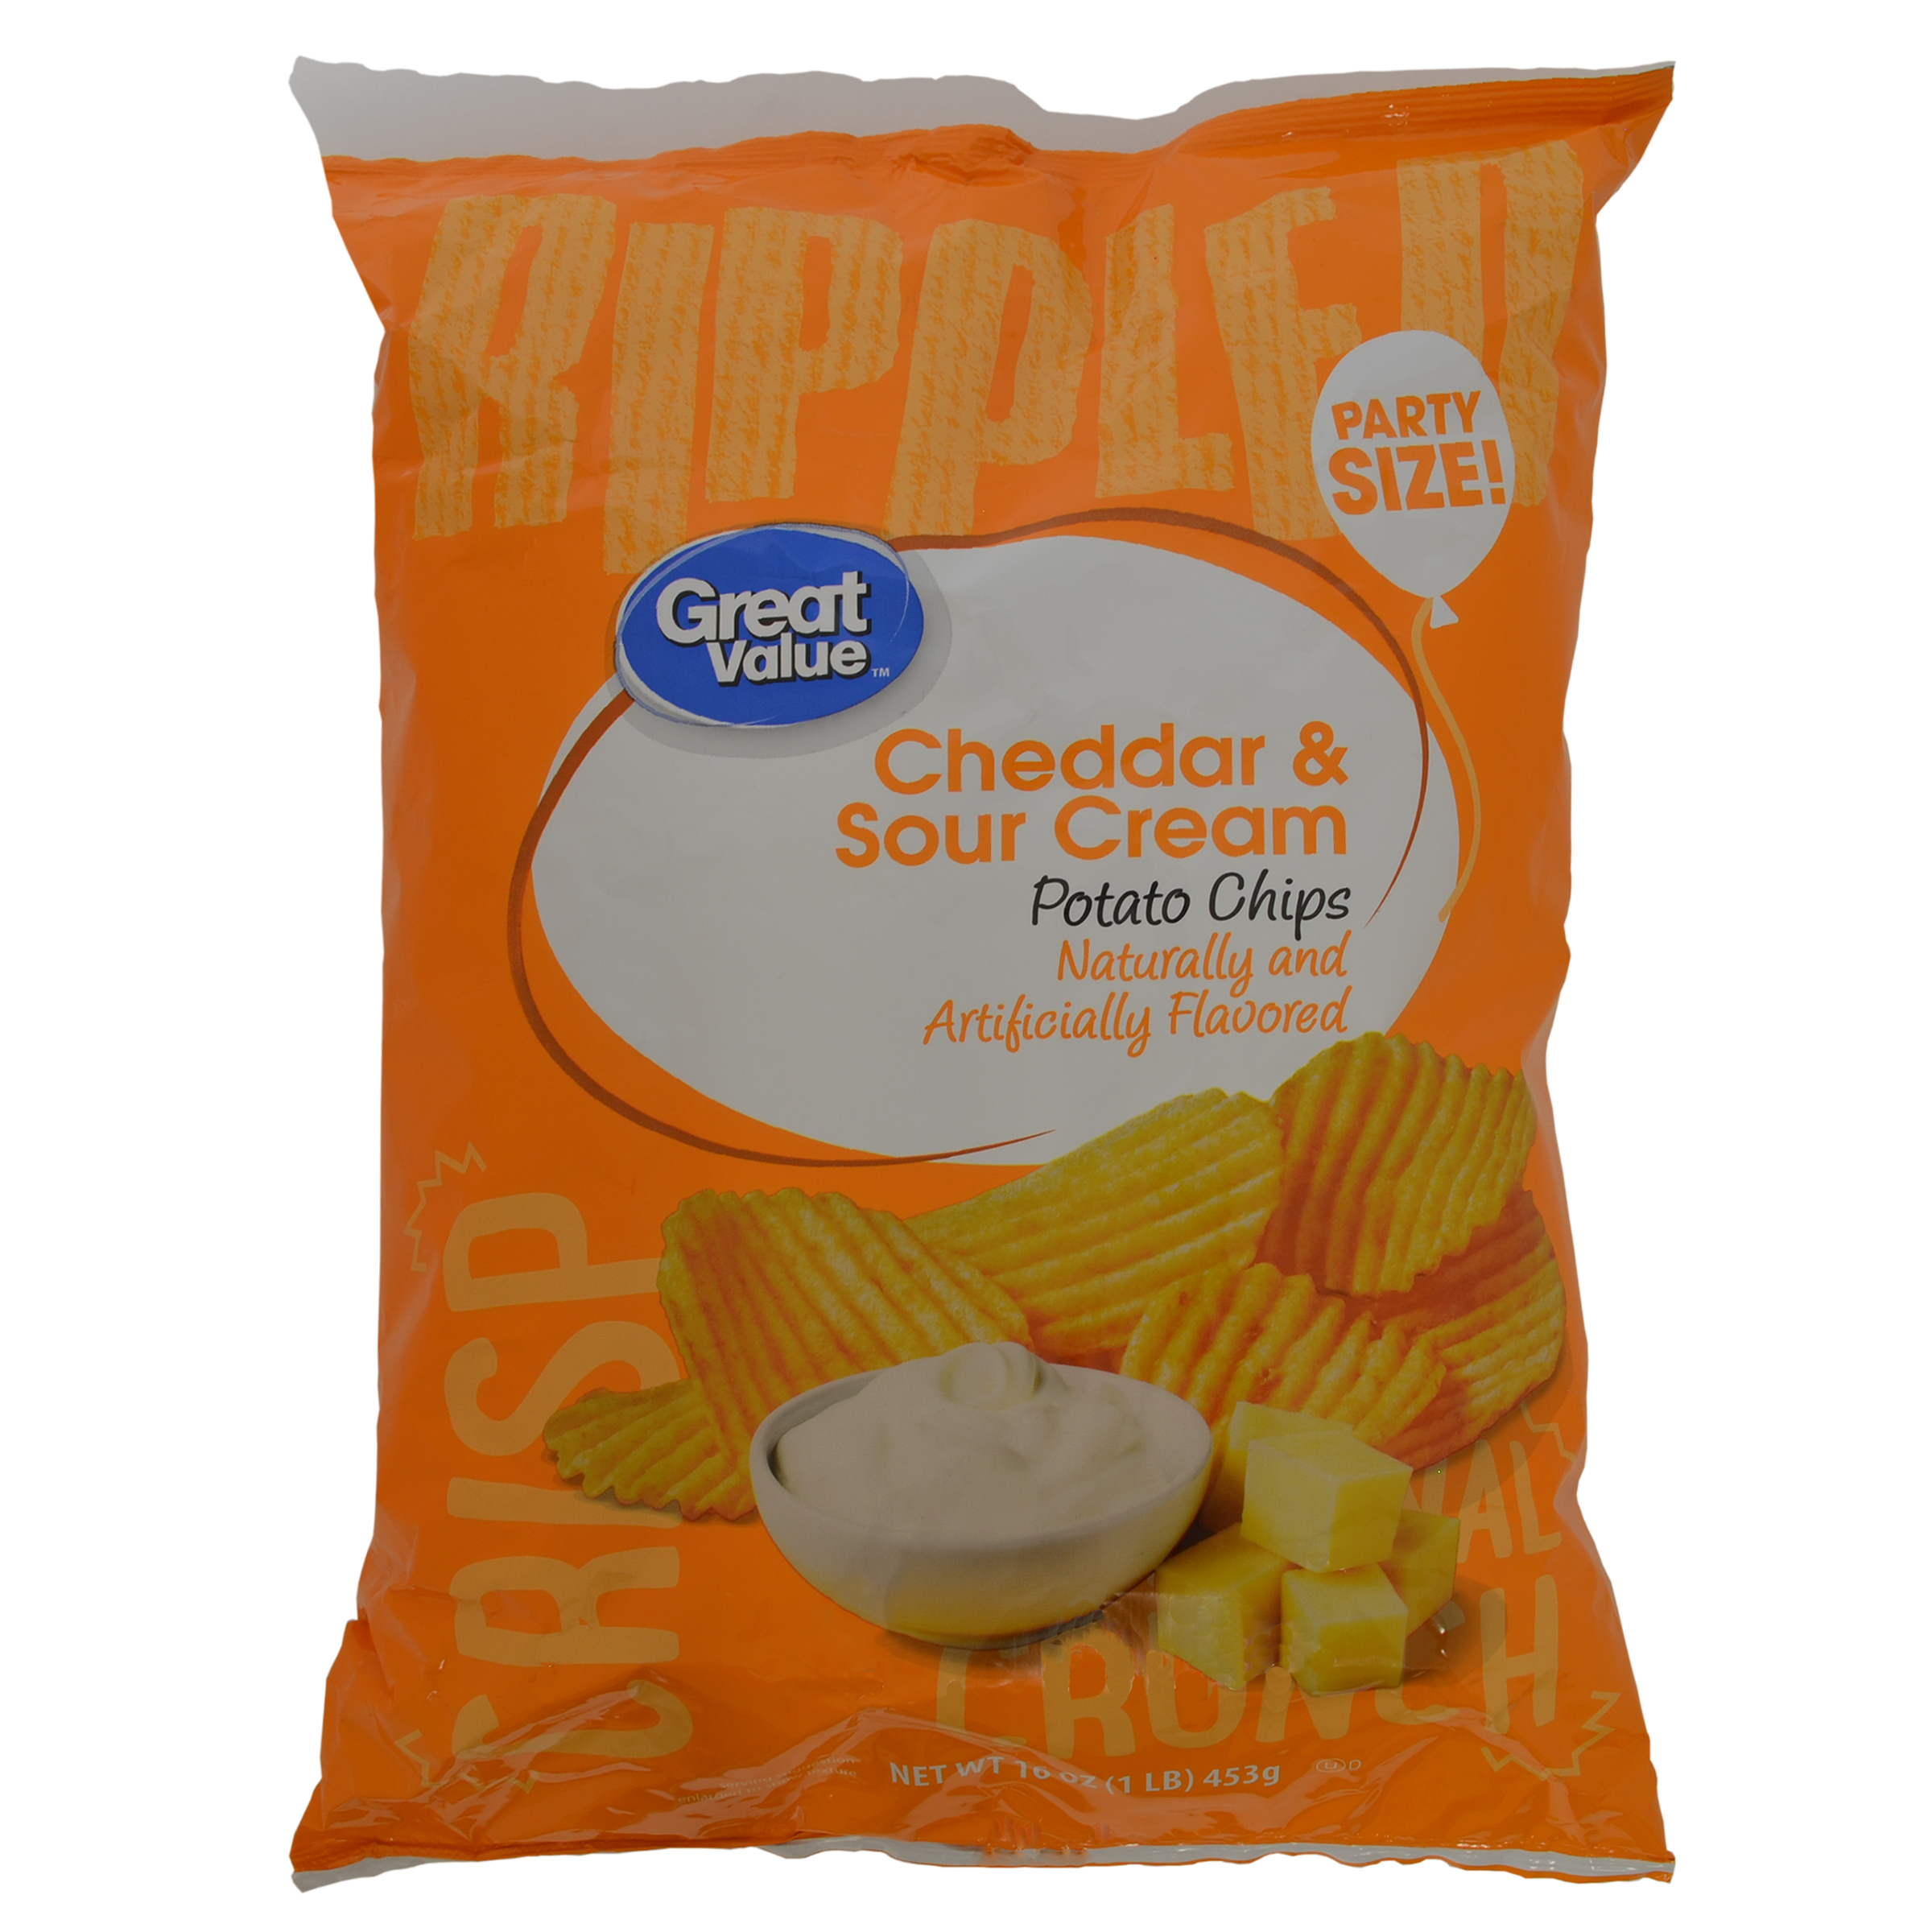 Great Value Party Size Cheddar & Sour Cream Potato Chips, 16 Oz.